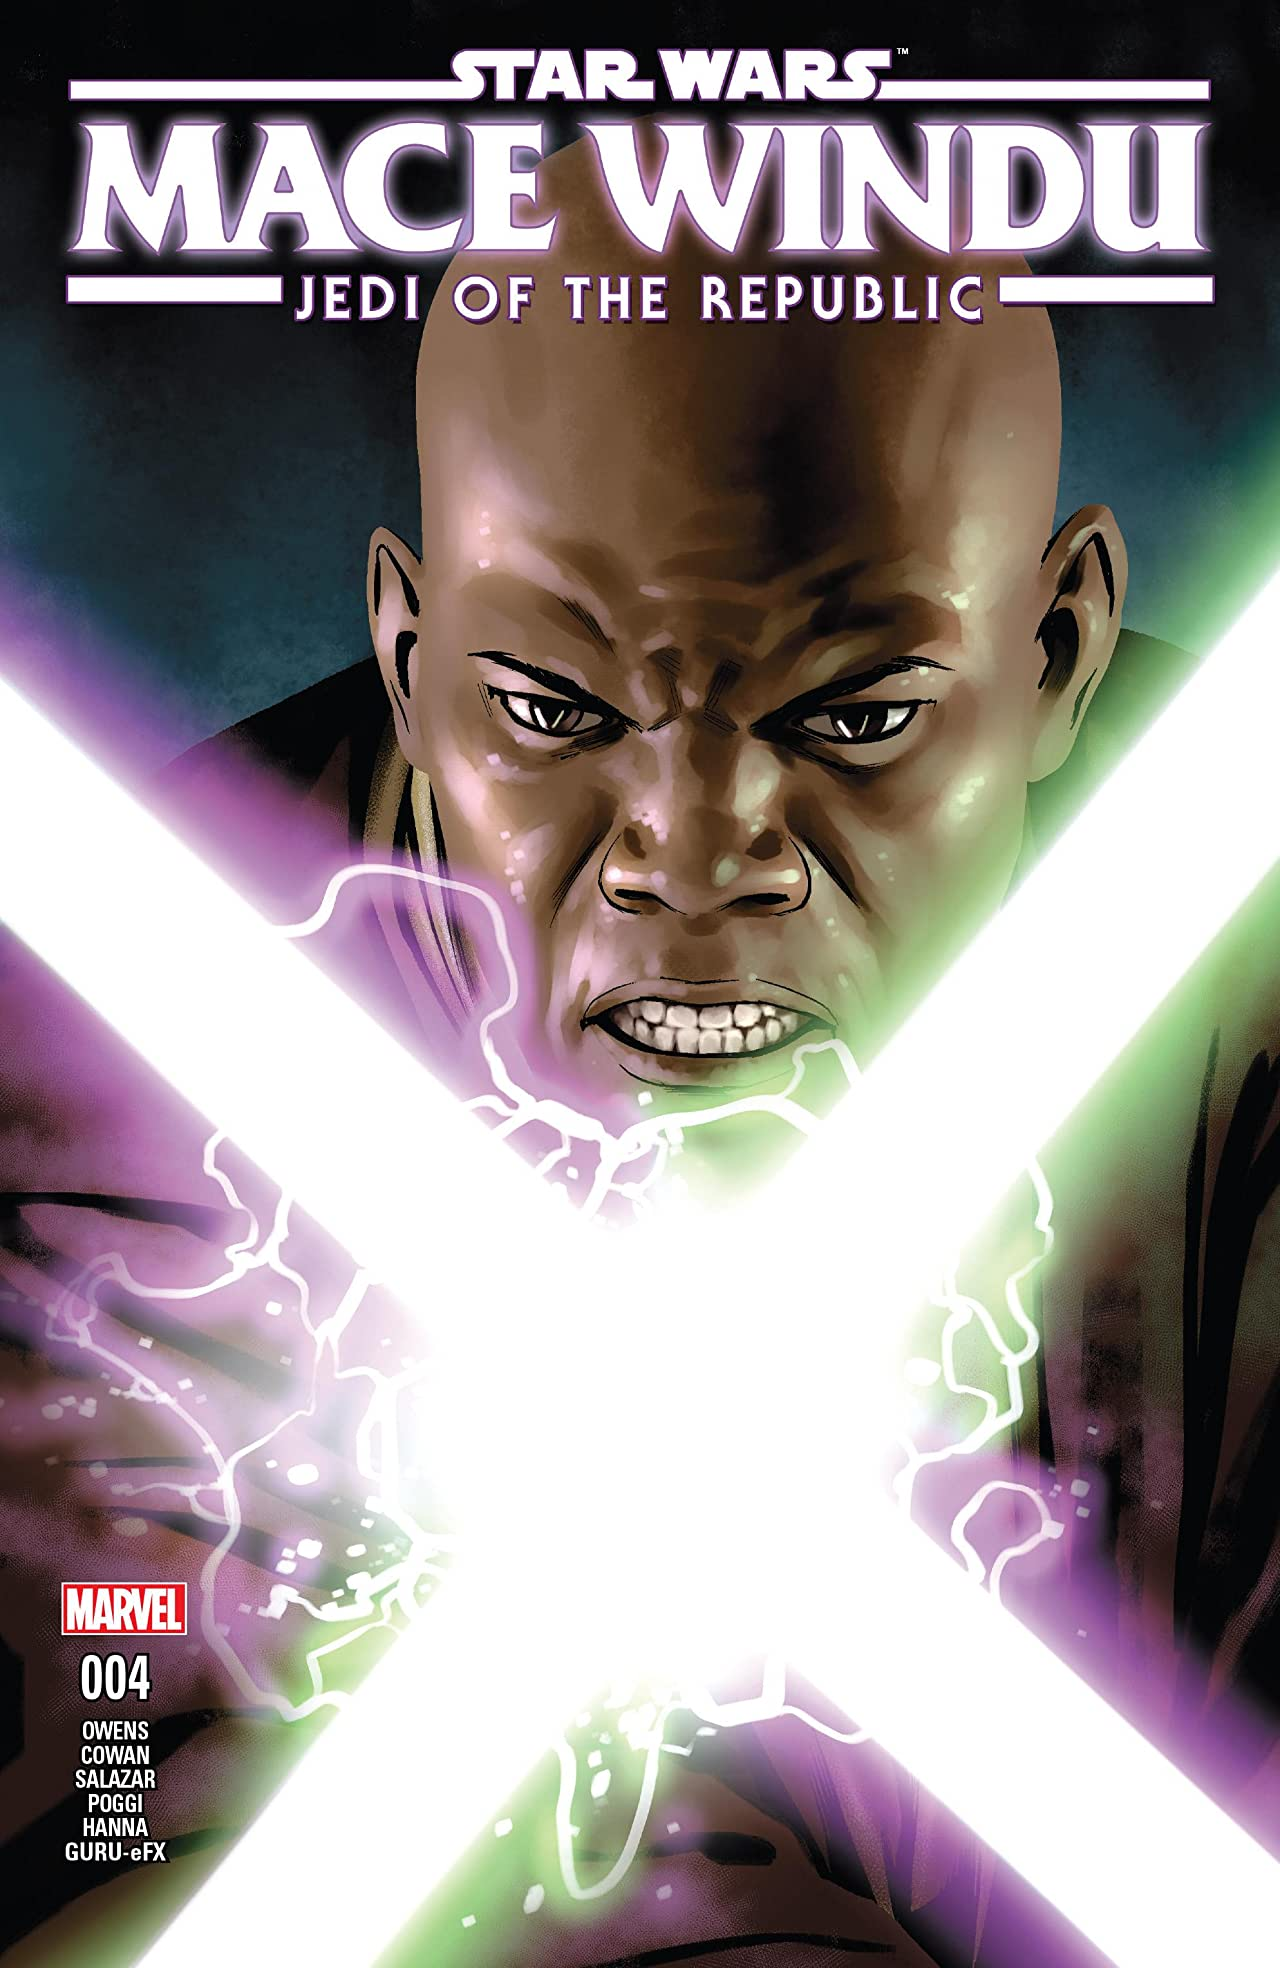 Star Wars: Jedi of the Republic - Mace Windu (2017) #4 (of 5)